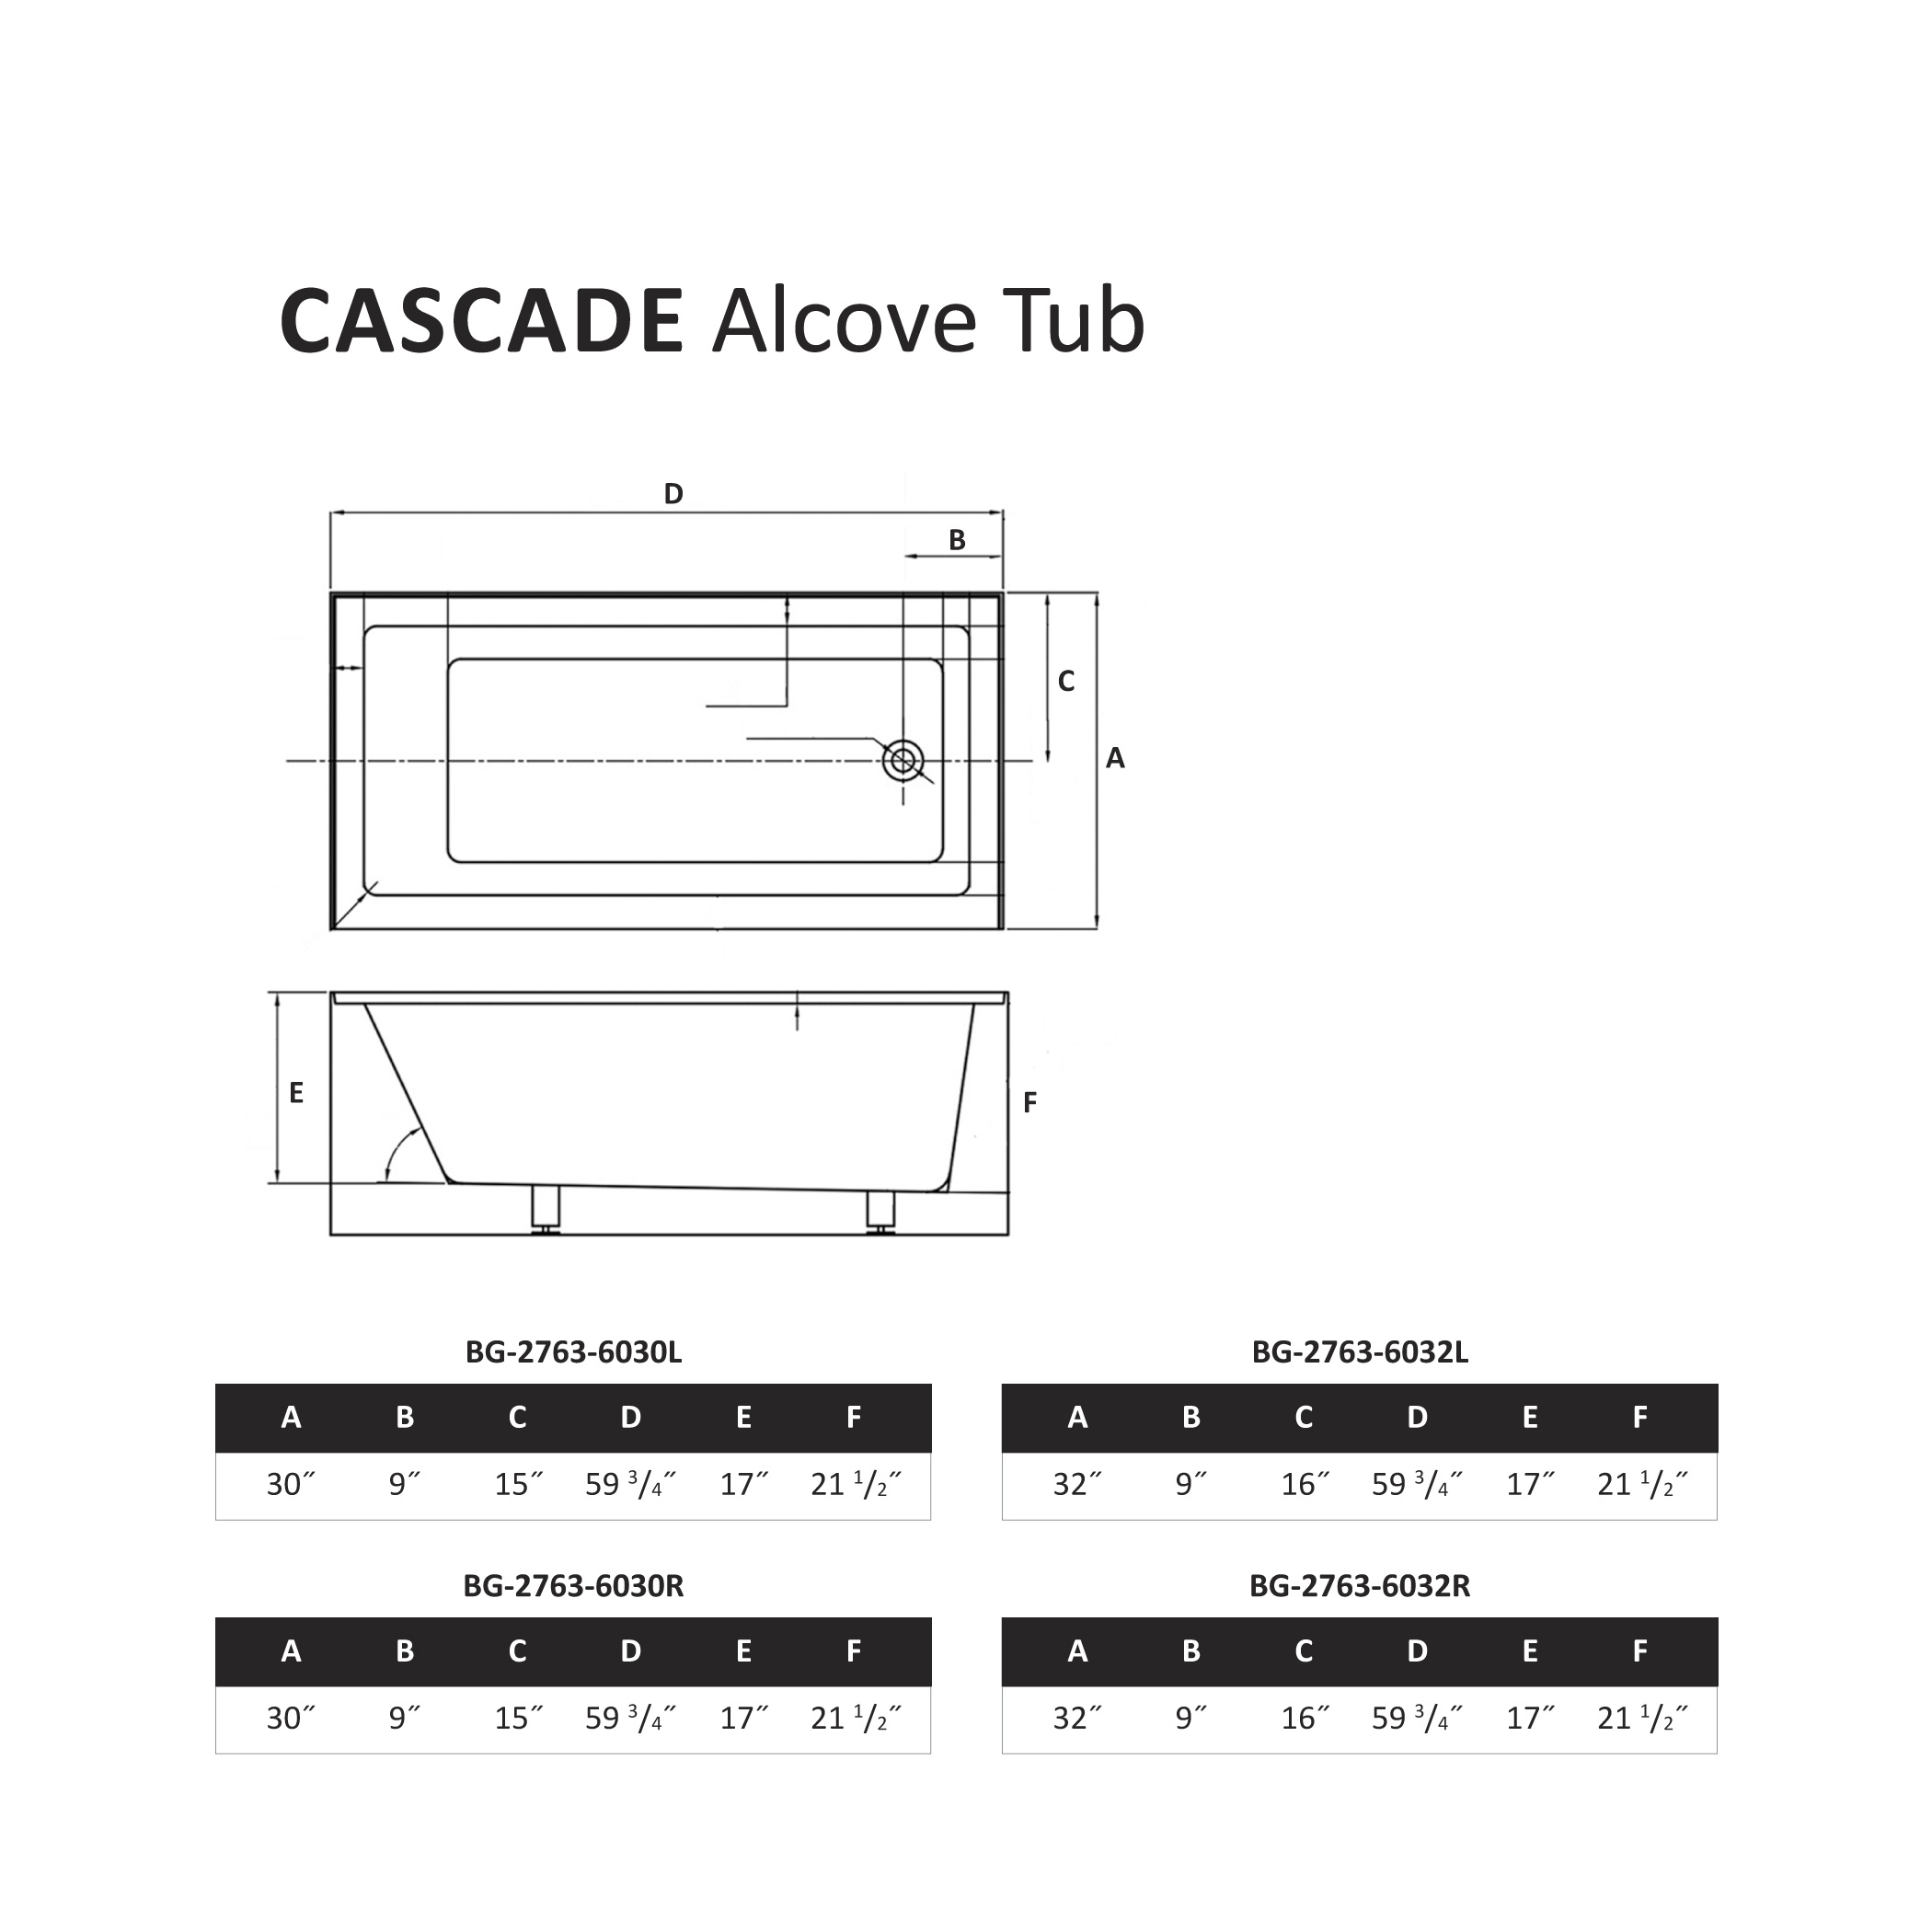 Cascade Alcove Tub Specification